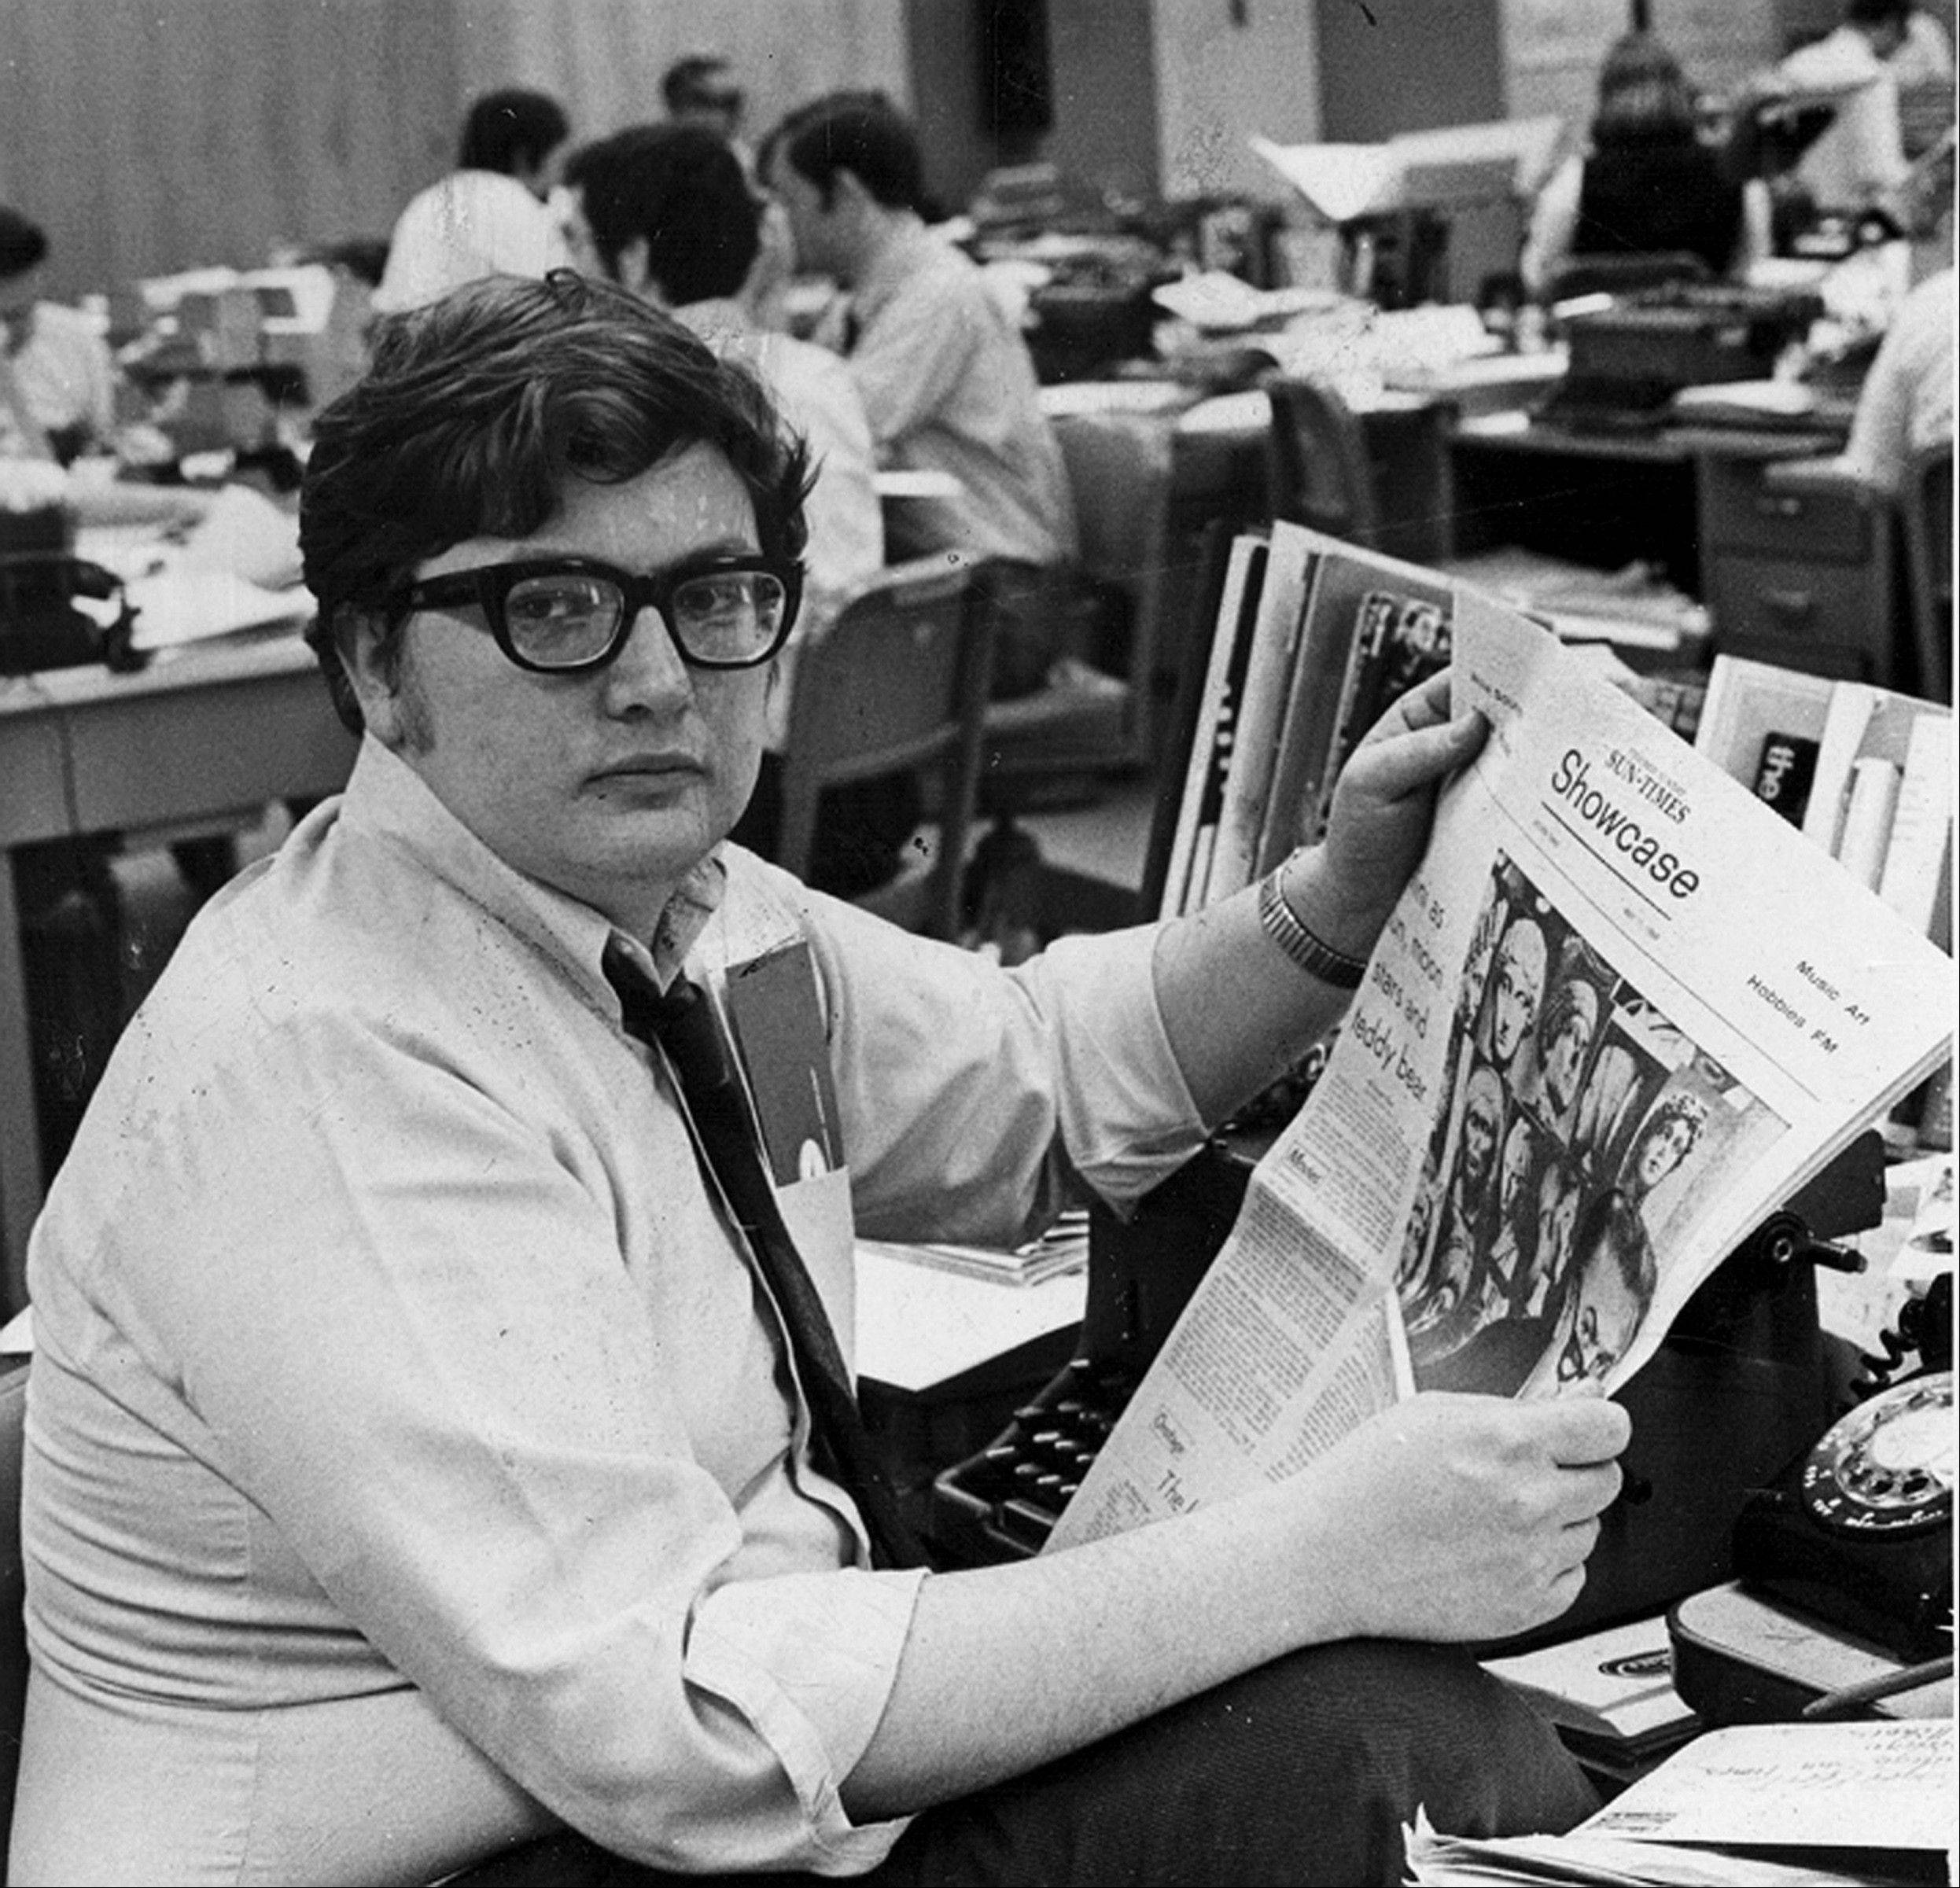 Ebert was first film critic to win Pulitzer